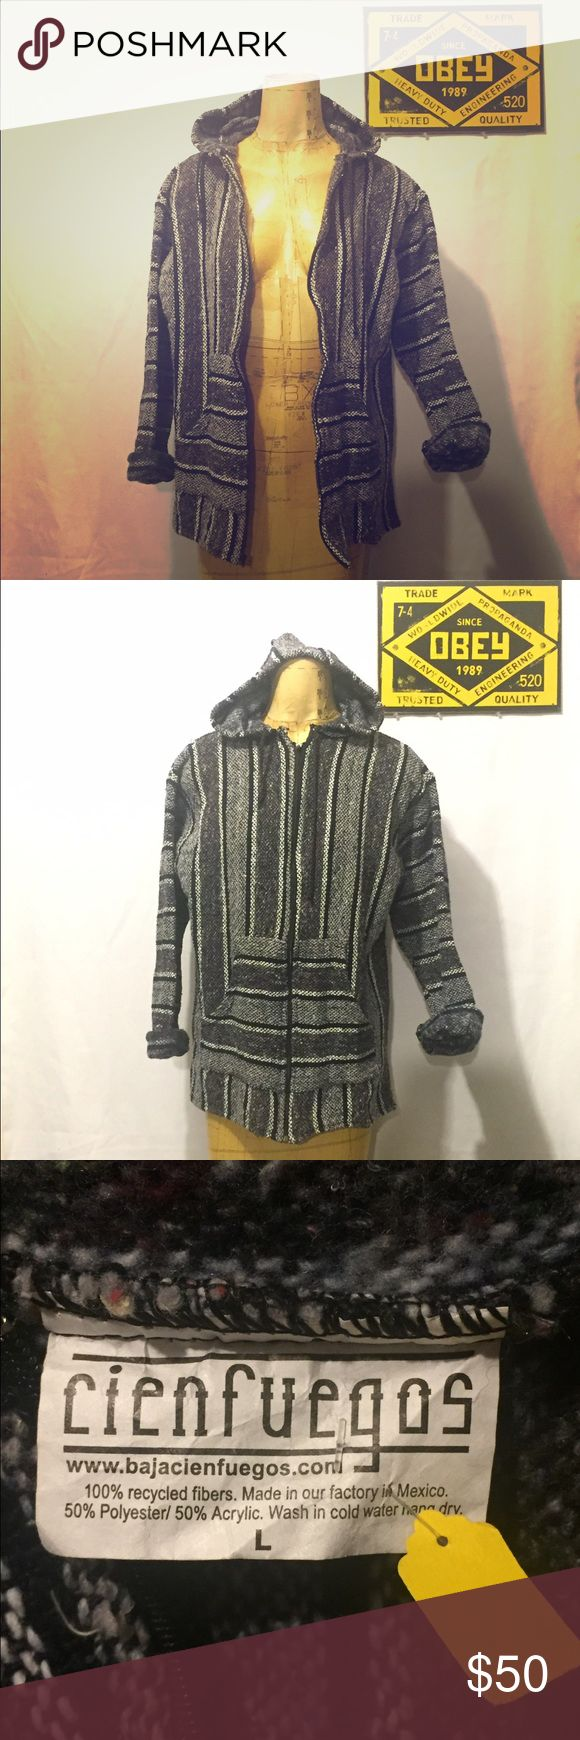 Zip-up Baja Jacket. NWT Zip-up Baja Jacket by Cienfuegos. Awesome Baja Jacket! Rare to see one that zips up like this! Size Large! Great for Festivals! Two front pockets big enough to fit and iPhone 6 Plus! Cienfuegos Jackets & Coats Utility Jackets